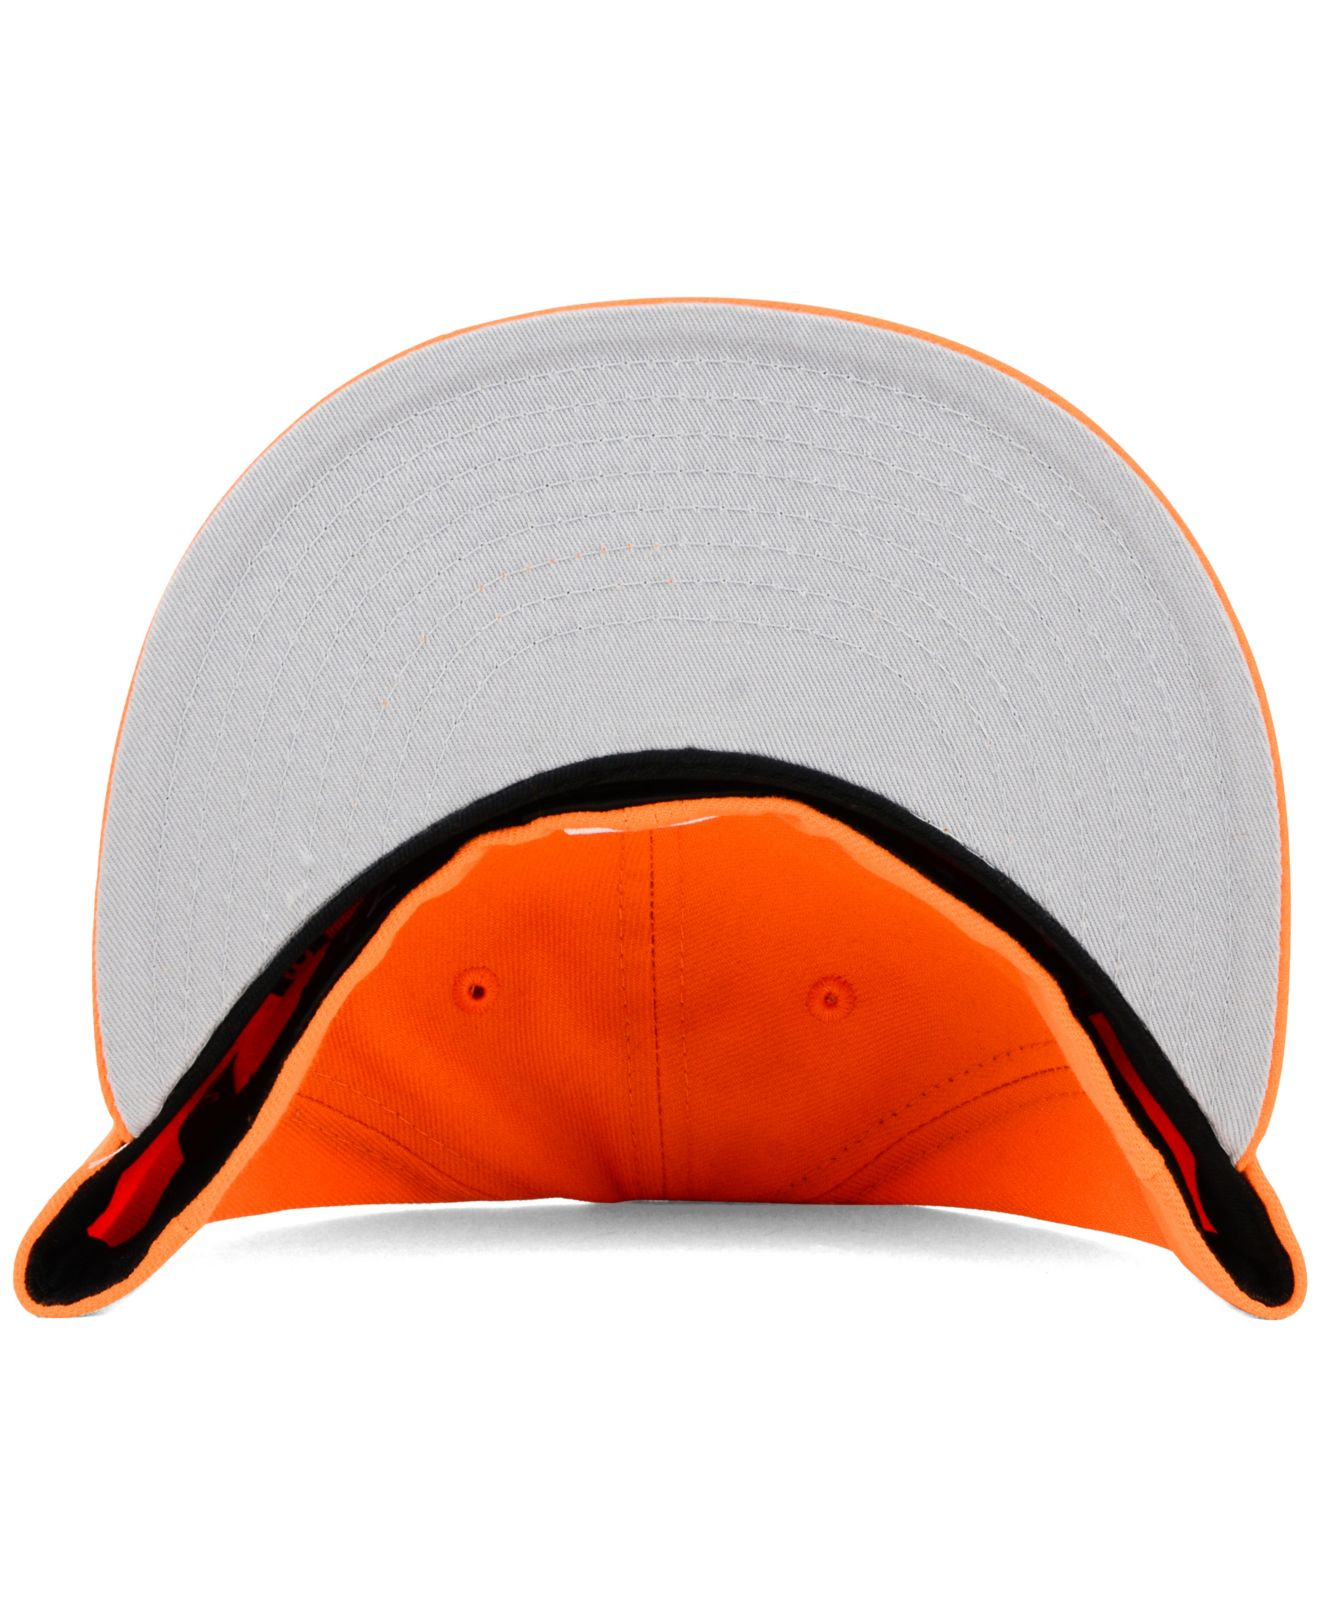 newest 7c67f 7f3c9 ... purchase lyst ktz atlanta braves c dub 59fifty cap in orange for men  0b3b4 c7fd1